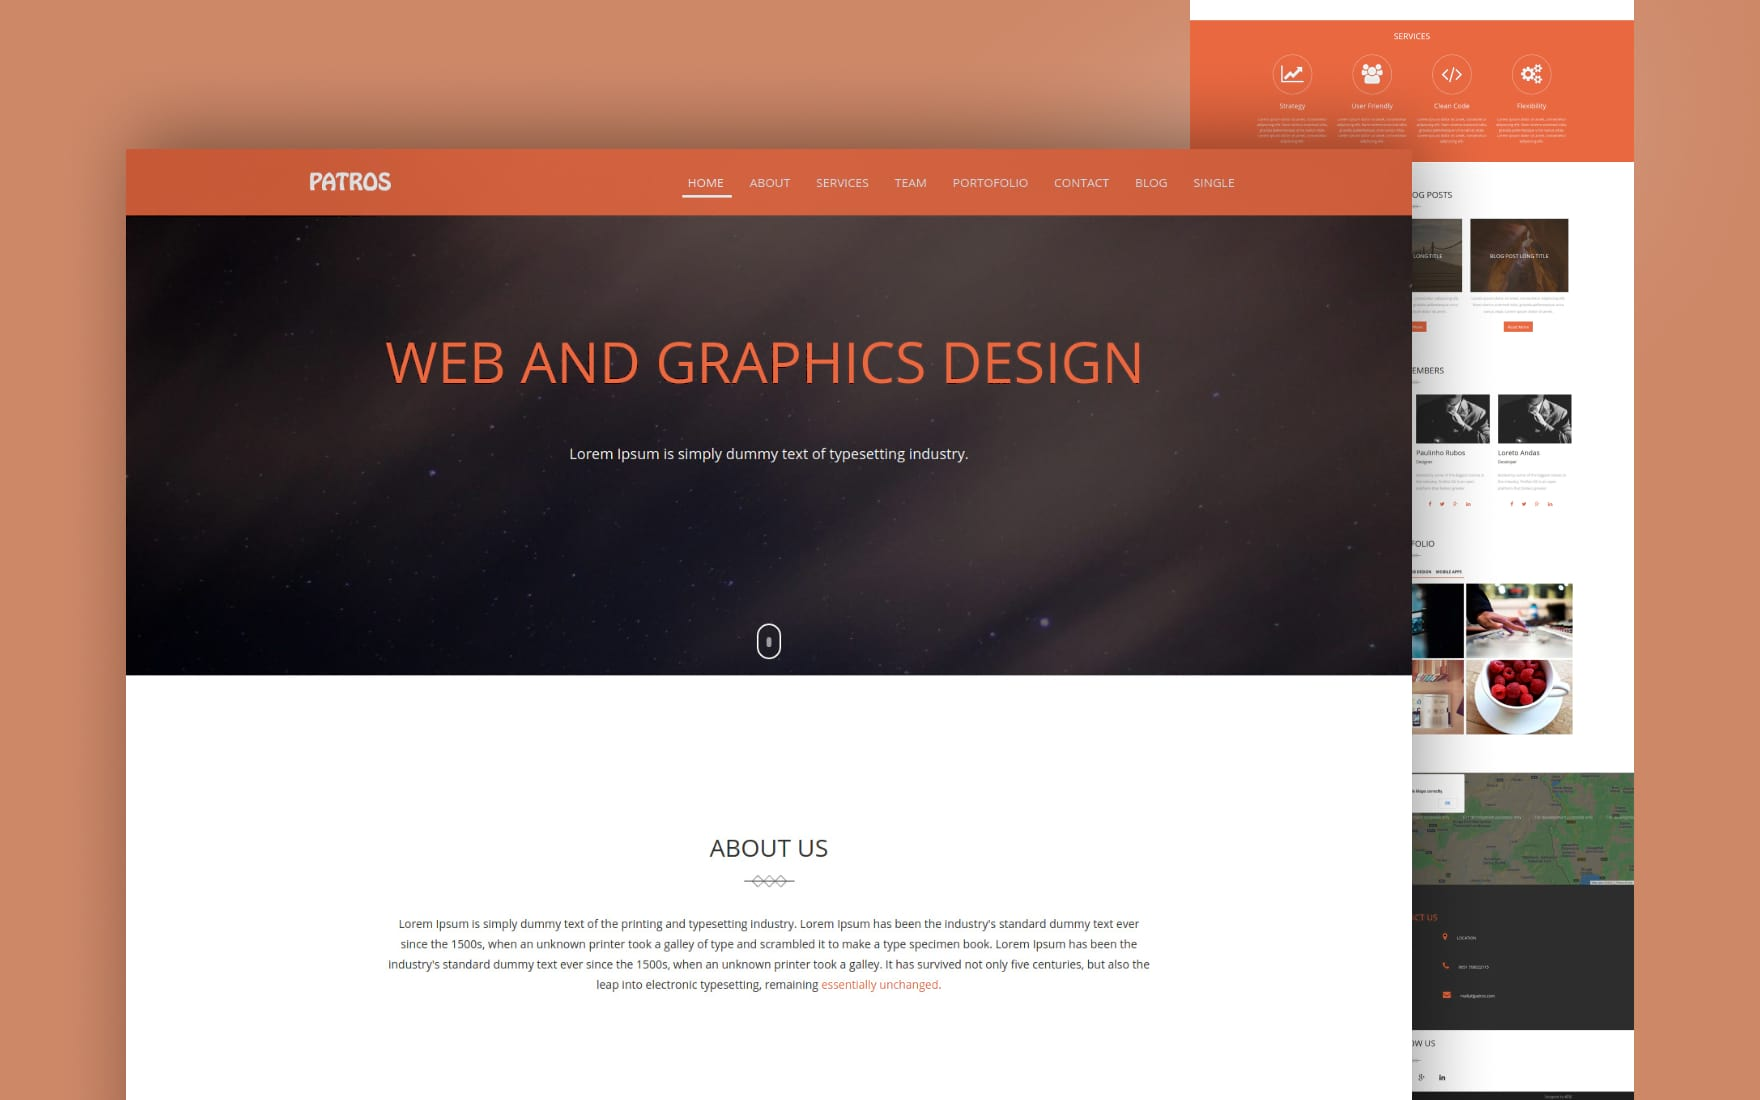 patros website template